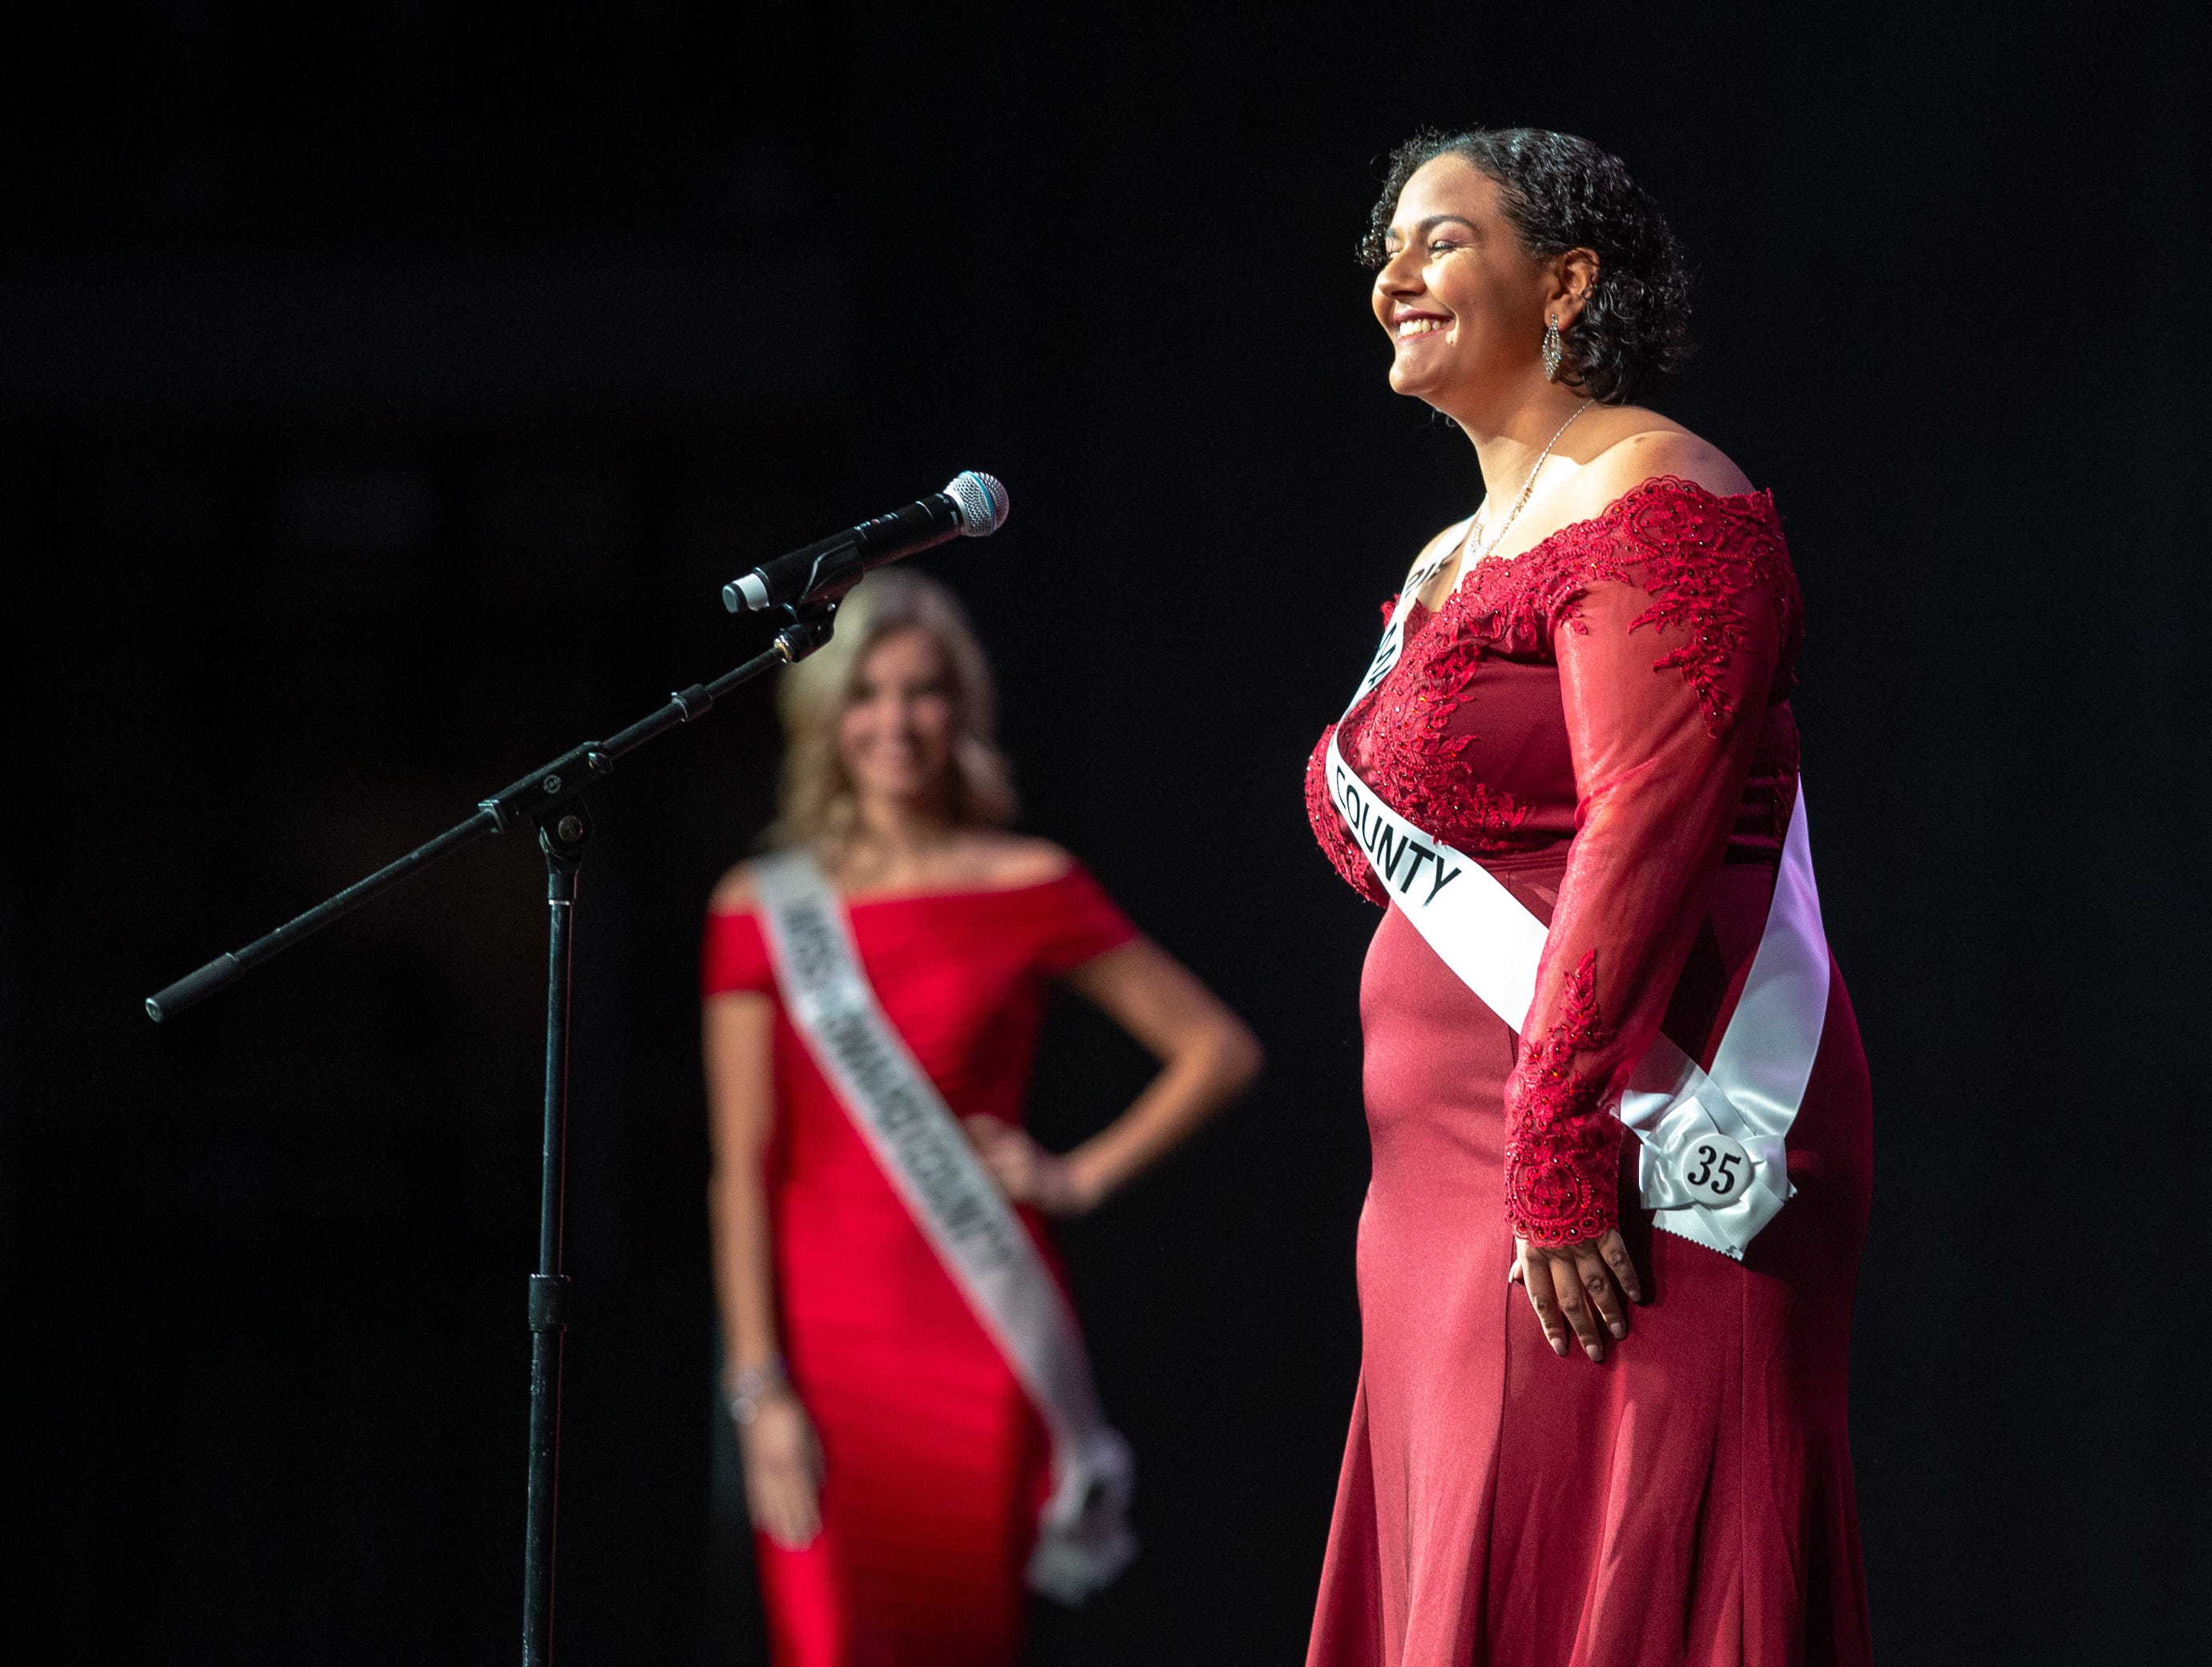 Miss Marion County, Desiree Cowling, introduces herself on stage during the 61st Indiana State Fair Queen Pageant at the Indiana State Fairgrounds in Indianapolis on Sunday, Jan. 6, 2019.